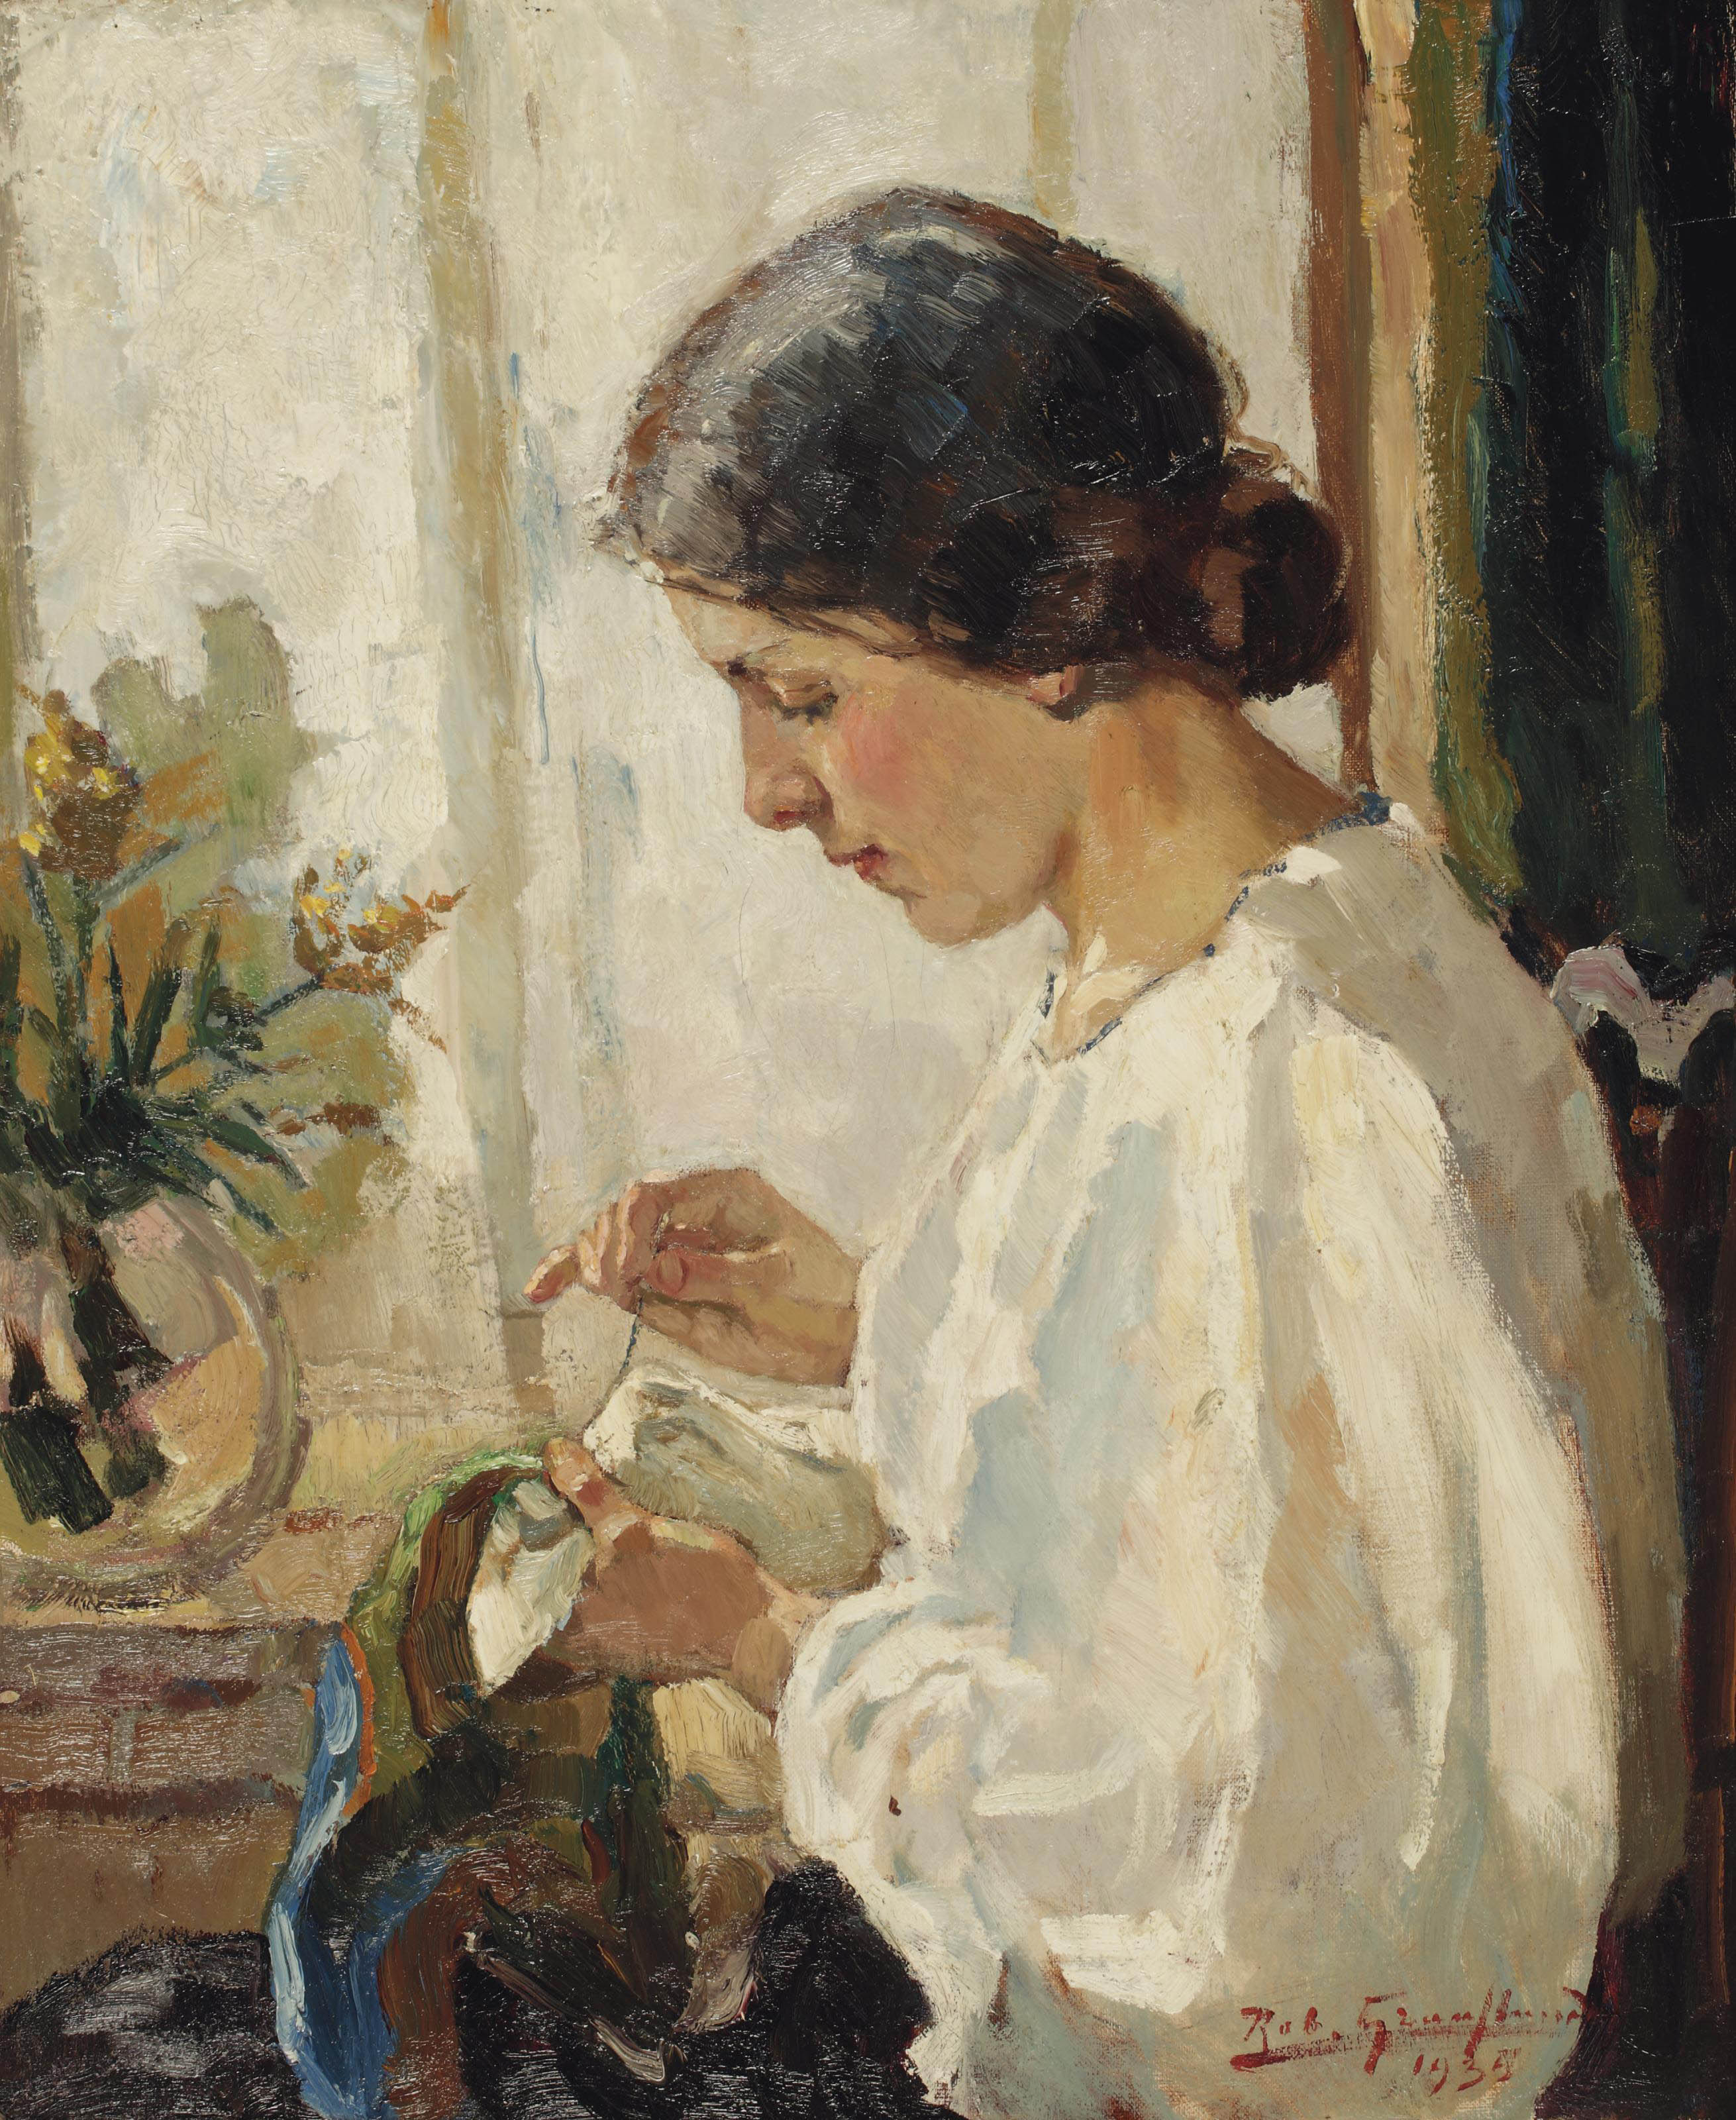 A seamstress doing needlework by a window